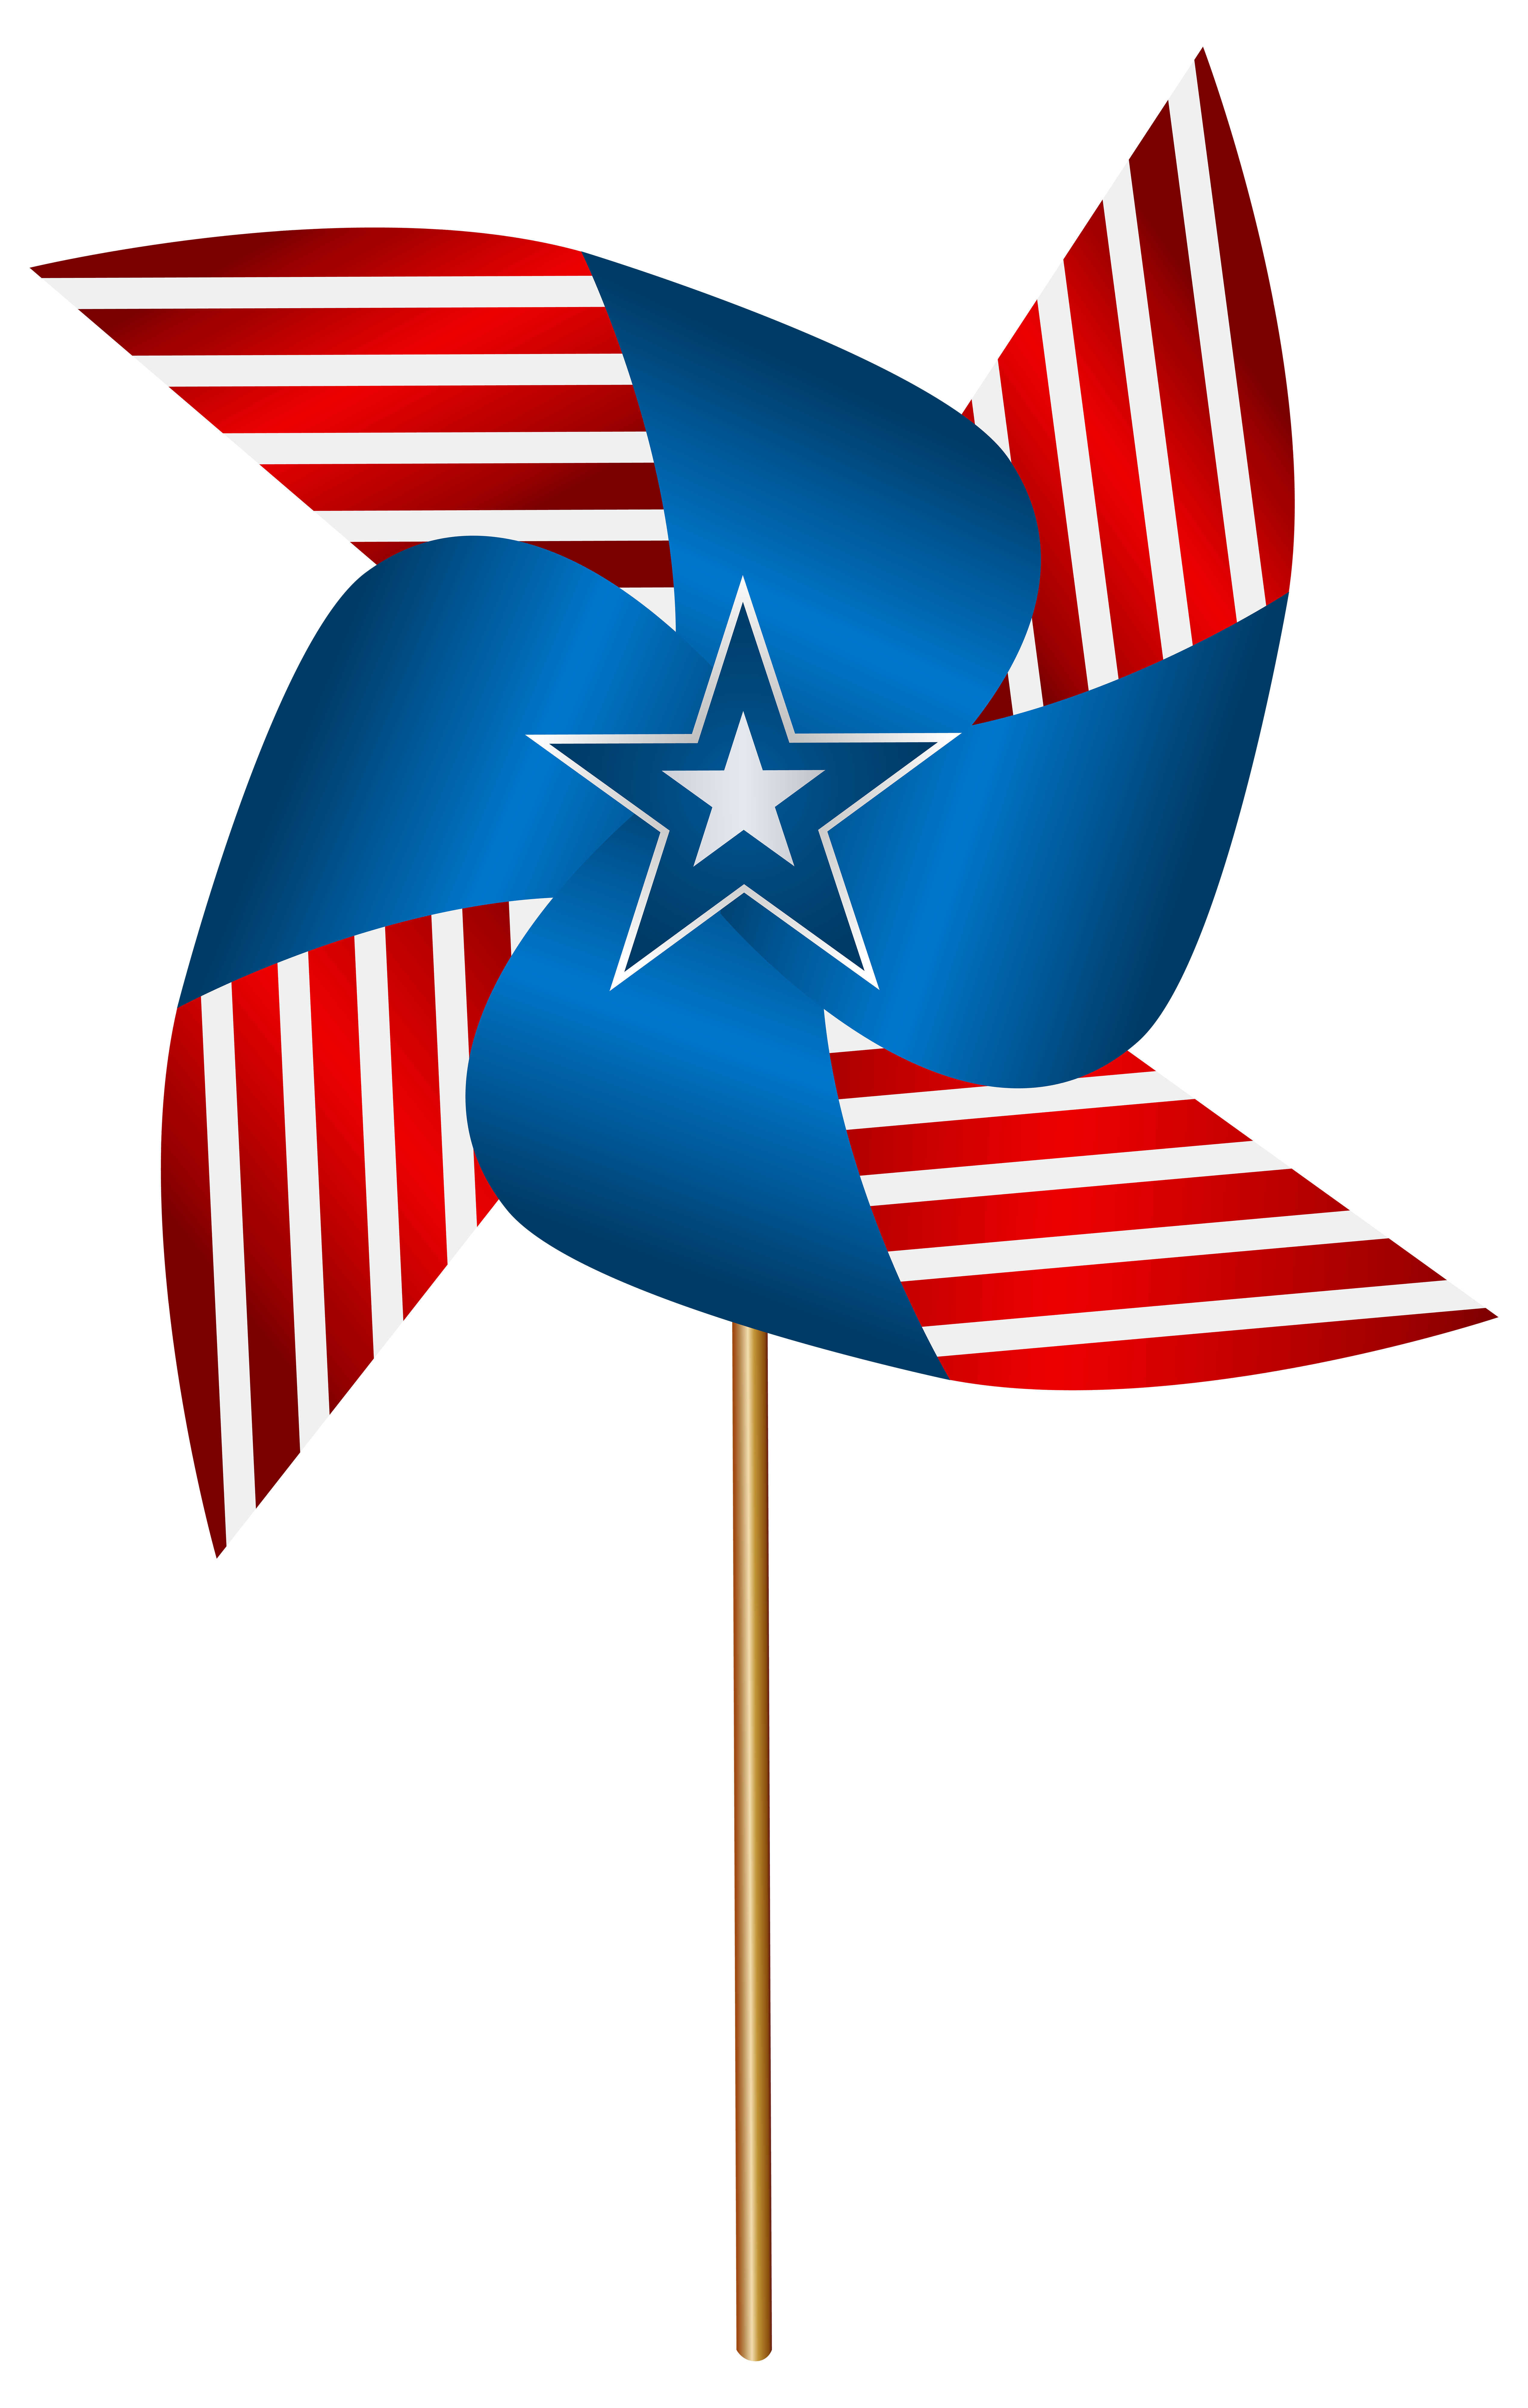 Clipart of the united states clip art transparent download United States Flag Clipart at GetDrawings.com | Free for personal ... clip art transparent download